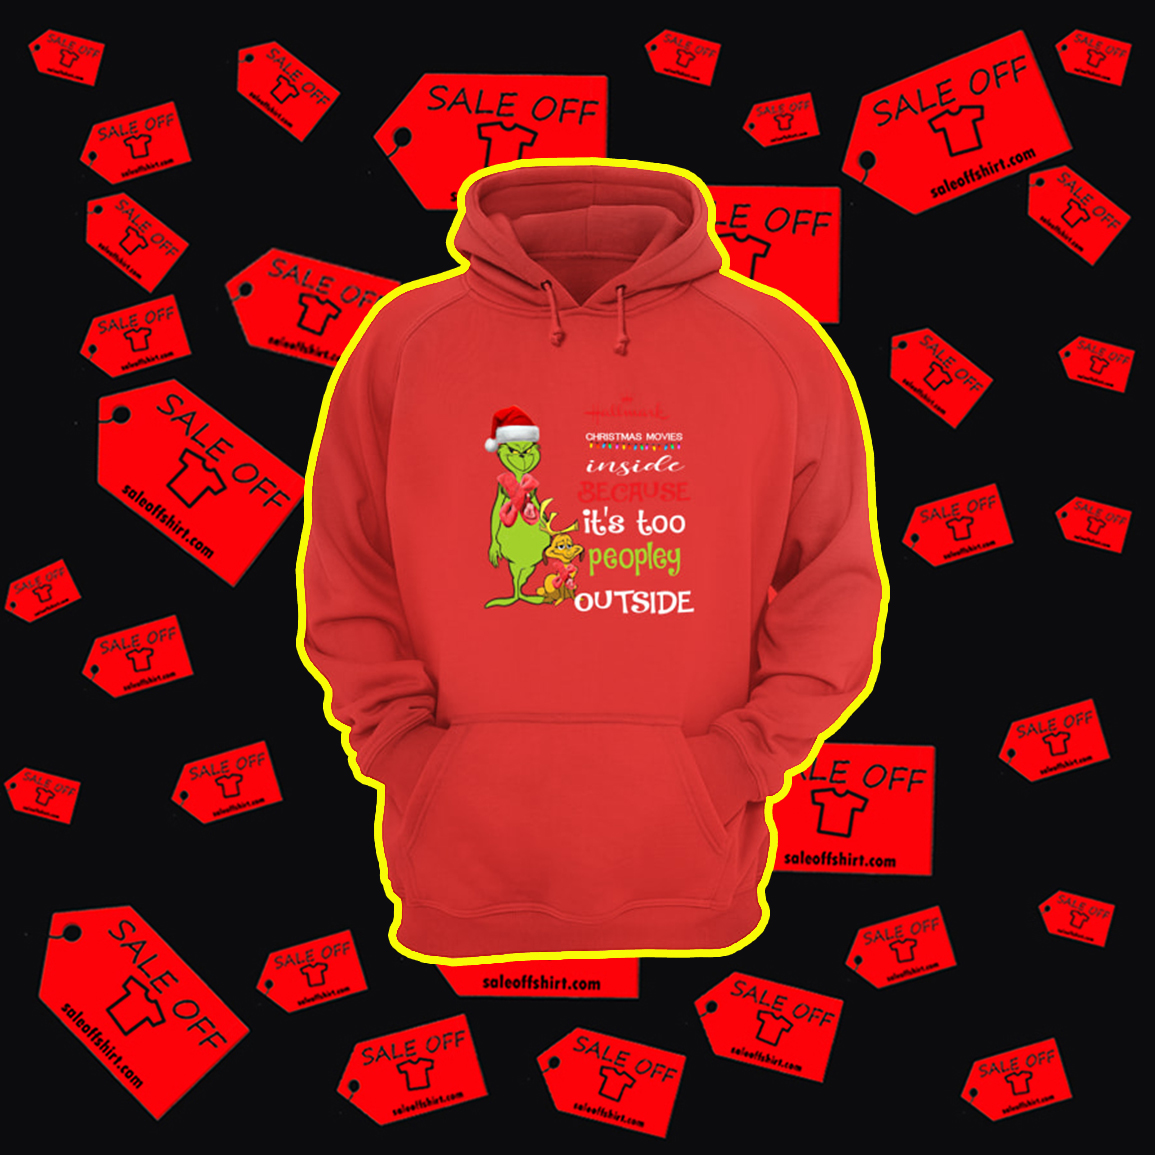 Grinch Hallmark Christmas Movies Inside Because It's Too Peopley Outside hoodie